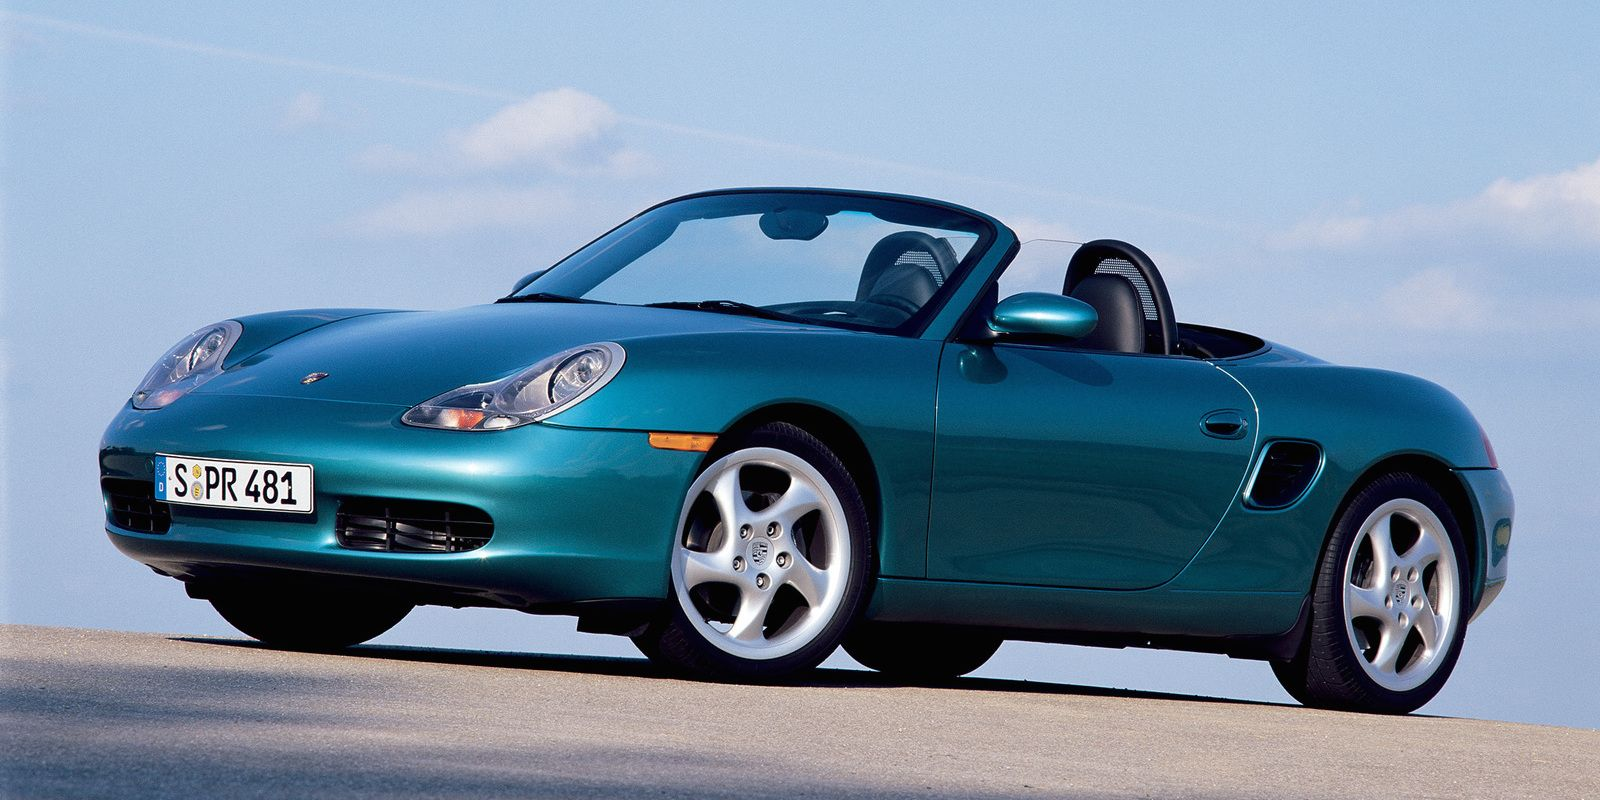 Best Used Cars Under TopRated Cars For Sale Under K - Top reliable sports cars